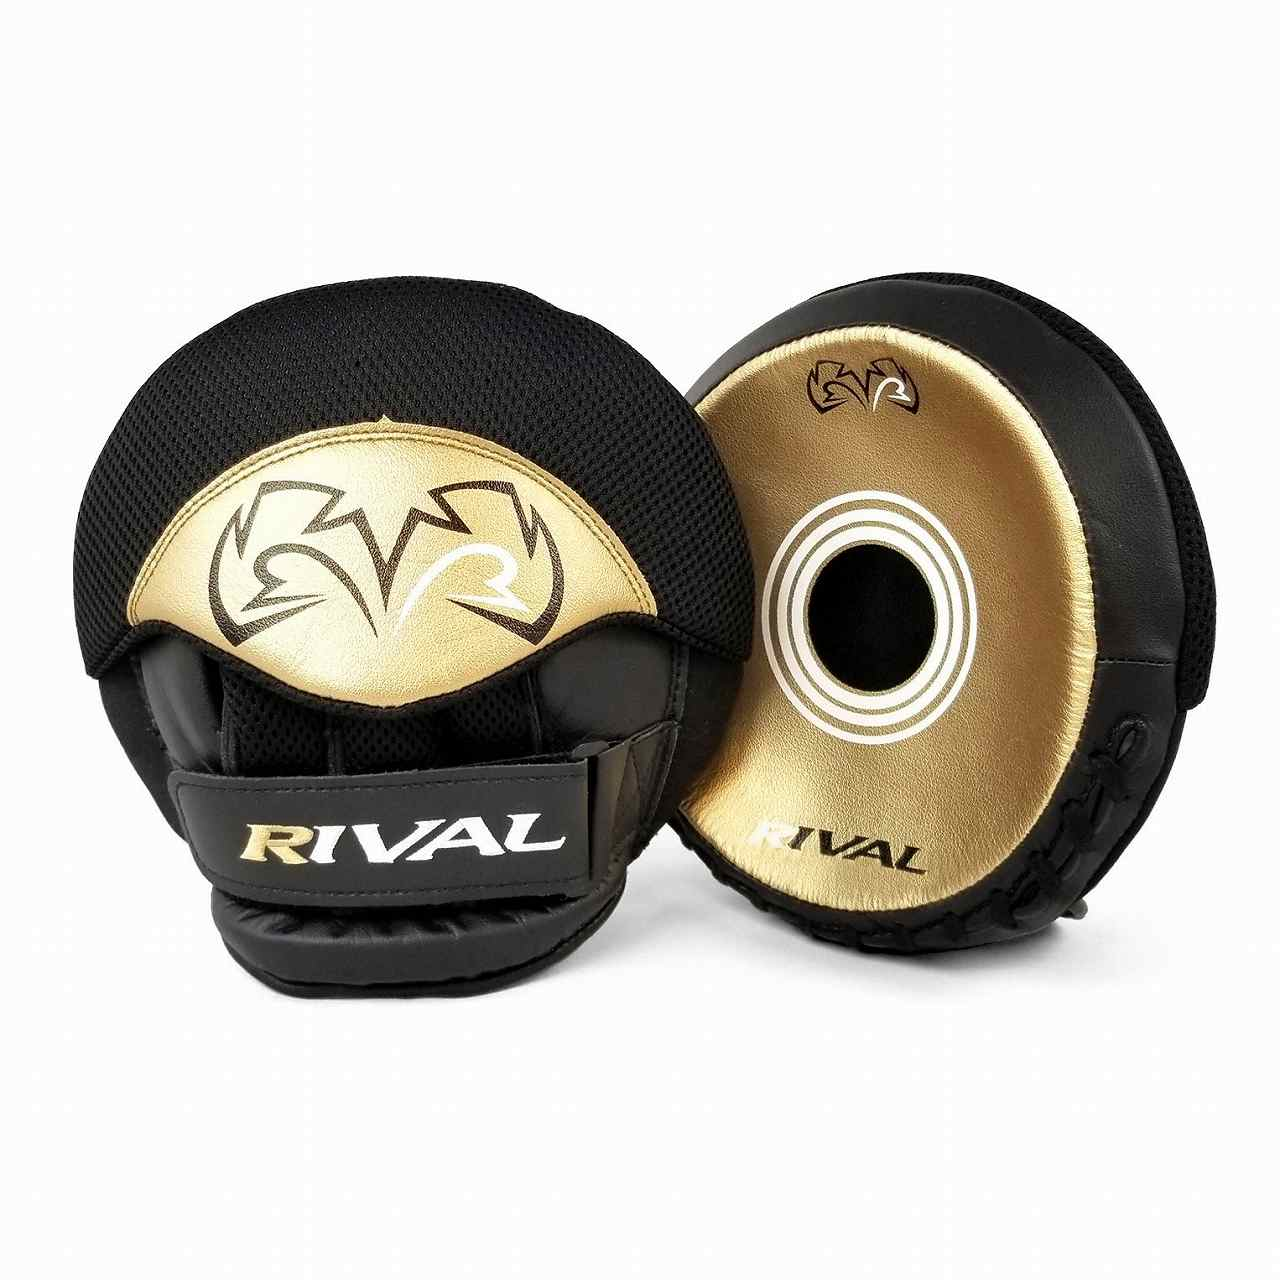 RIVAL RPM5 PARABOLIC PUNCH MITTS 2.0